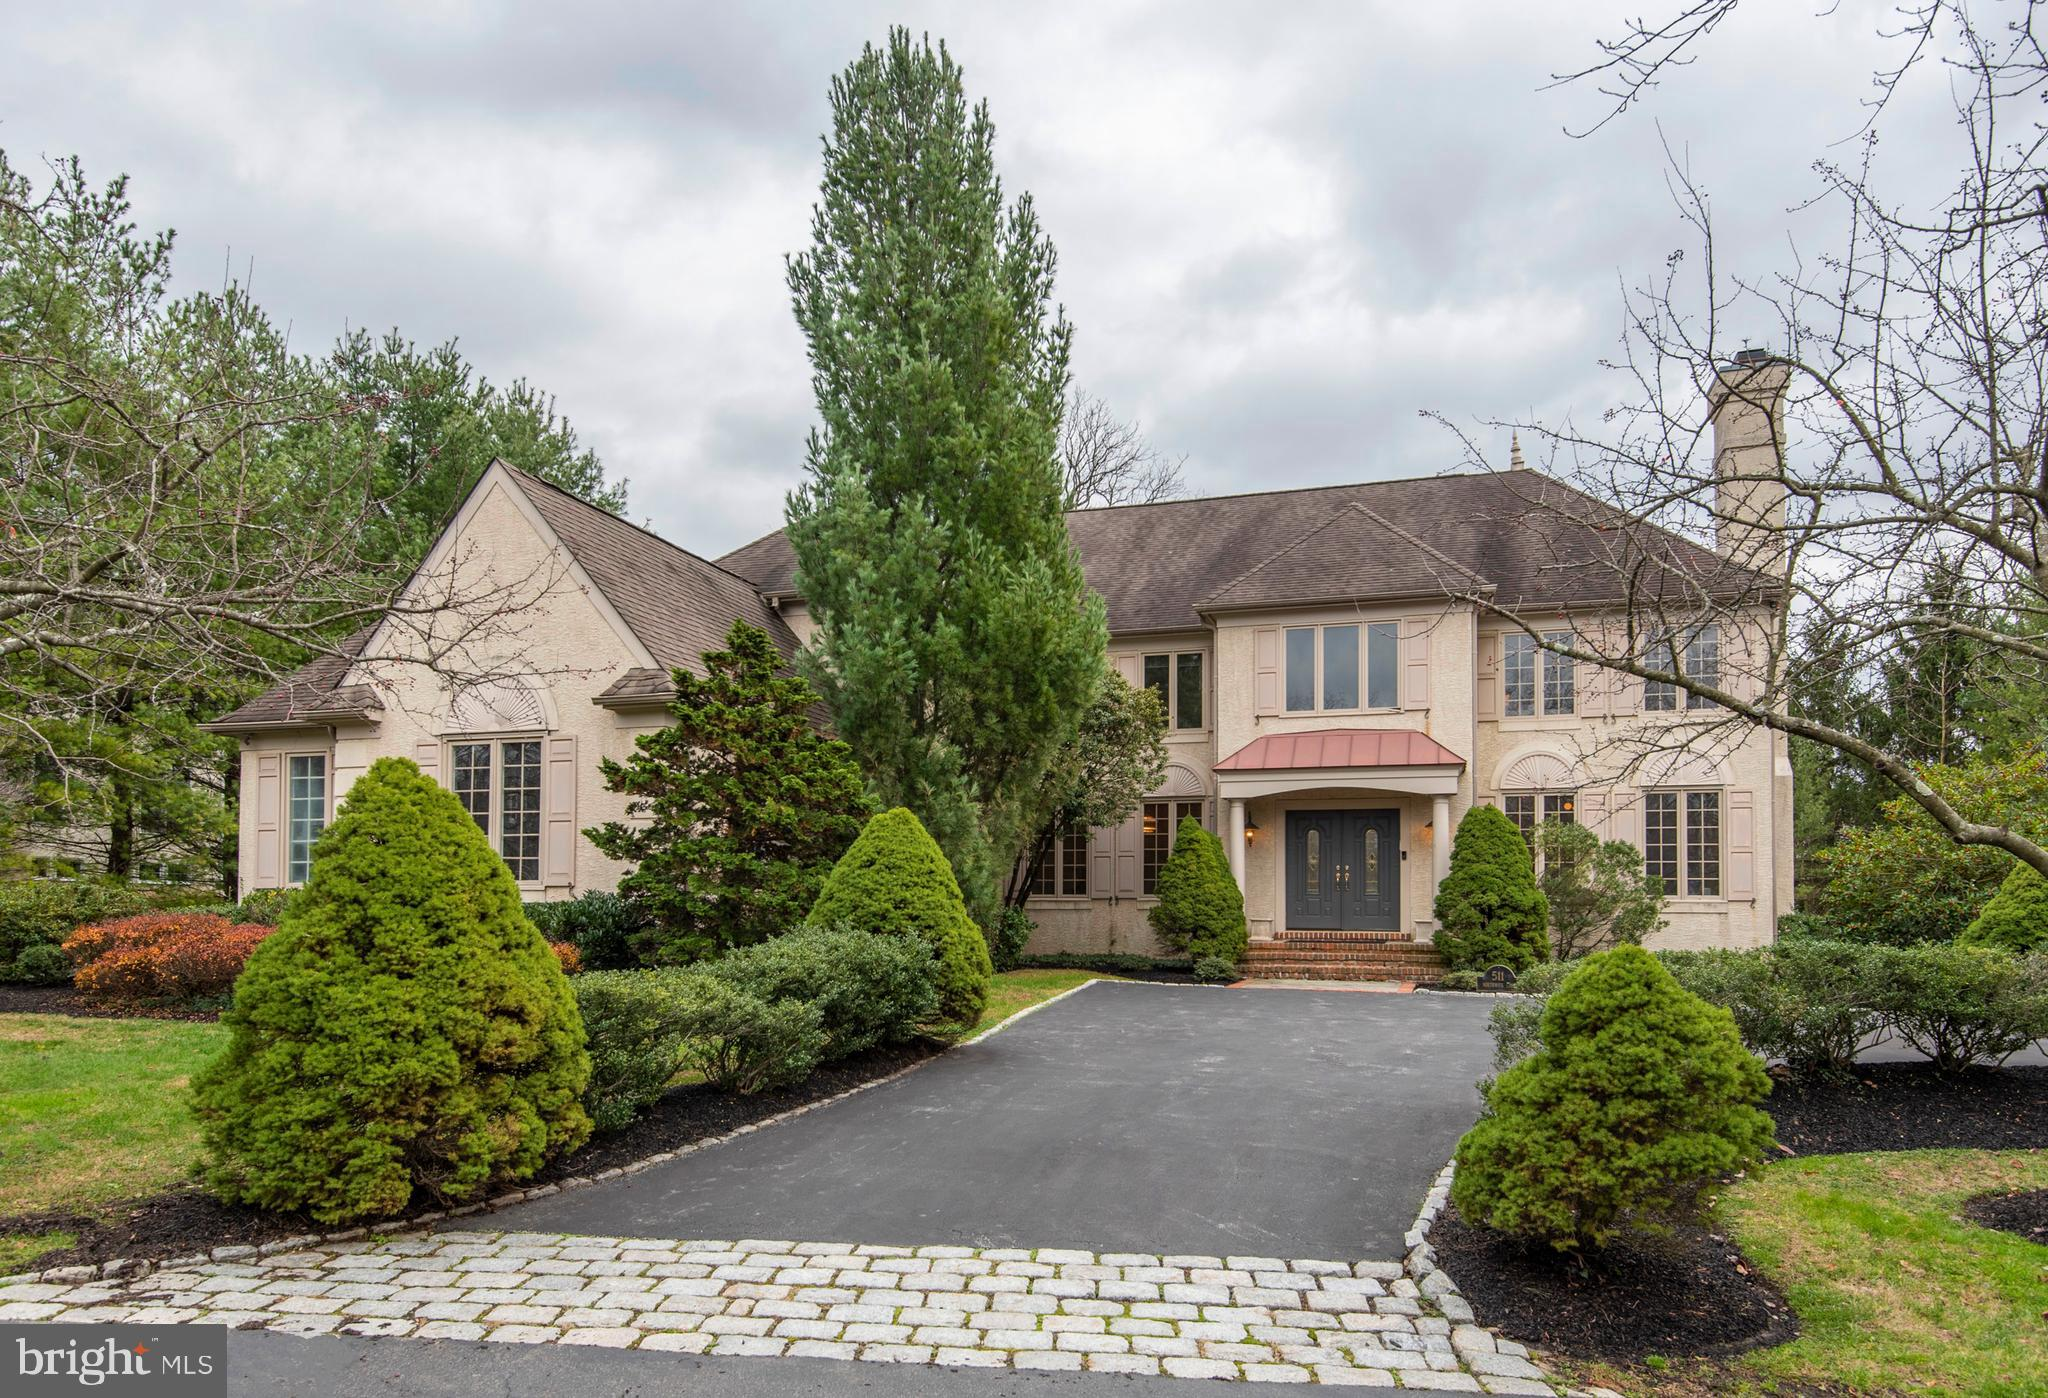 This impressive French-style Colonial is situated on a beautiful lot off of a private cul-de-sac in a quiet community in Villanova. It features an elongated driveway to the 3-car garage, and a separate formal drive with Belgium block and paver edging. You will admire the many details including the hardwood floors, architecturally appealing custom mouldings throughout, and light-filled views from every window. Enter through the double entrance door into the large center hall with curved staircase. From here you will notice the open floor plan that effortlessly flows from room to room. The main level study provides comfort and convenience for the work at home professional, and is complimented by the custom built-in bookshelves. The living room with marble fireplace and the spacious dining room give off a wonderful ambiance for entertaining. The gourmet kitchen has an abundance of prep and storage space with custom cabinetry, granite countertops, tile backsplash, sub-zero refrigerator, 6-burner Wolf stove, double wall ovens, peninsula with bar sink and bar seating, cathedral ceiling with skylight, recessed lighting, and an adjacent, light-filled breakfast room with Atrium door that walks out to a paver patio. The breakfast room is open to the fireside family room with vaulted ceiling and Palladium windows that overlook the private yard. A large mud room/laundry room, and both a formal and informal powder room complete this level. Upstairs you will find an exceptional main bedroom suite featuring a sitting room, his-and-her walk-in closets, separate vanity area, and a luxurious private bath. The main bath is complete with double bowl vanity, oval shaped jetted tub, over sized marble shower, and a water closet. The Prince/Princess Suite  features a private bath and walk-in closet, and the two additional large bedrooms share a bath. In the lower level you will find lots of additional living space including a great room giving you endless possibilities for a theater, game 